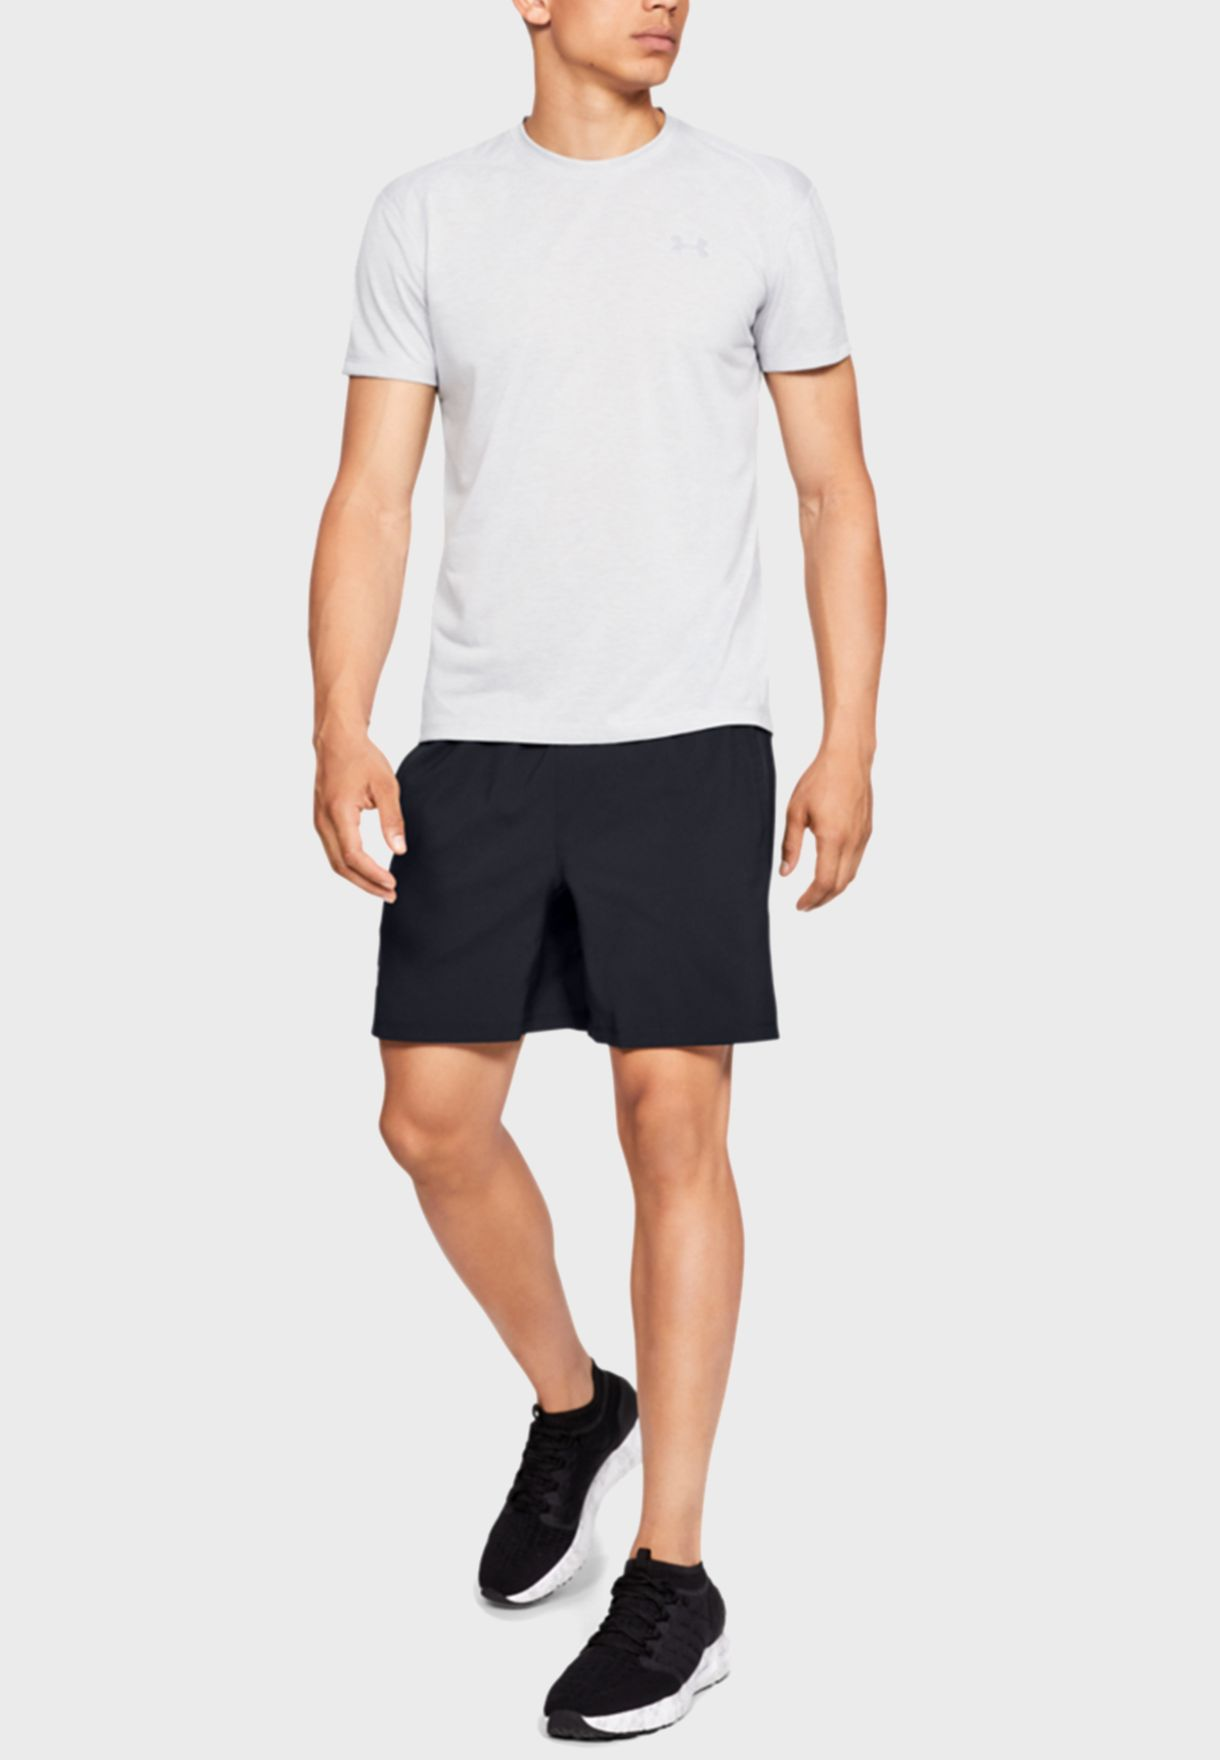 2In1 Launch Shorts